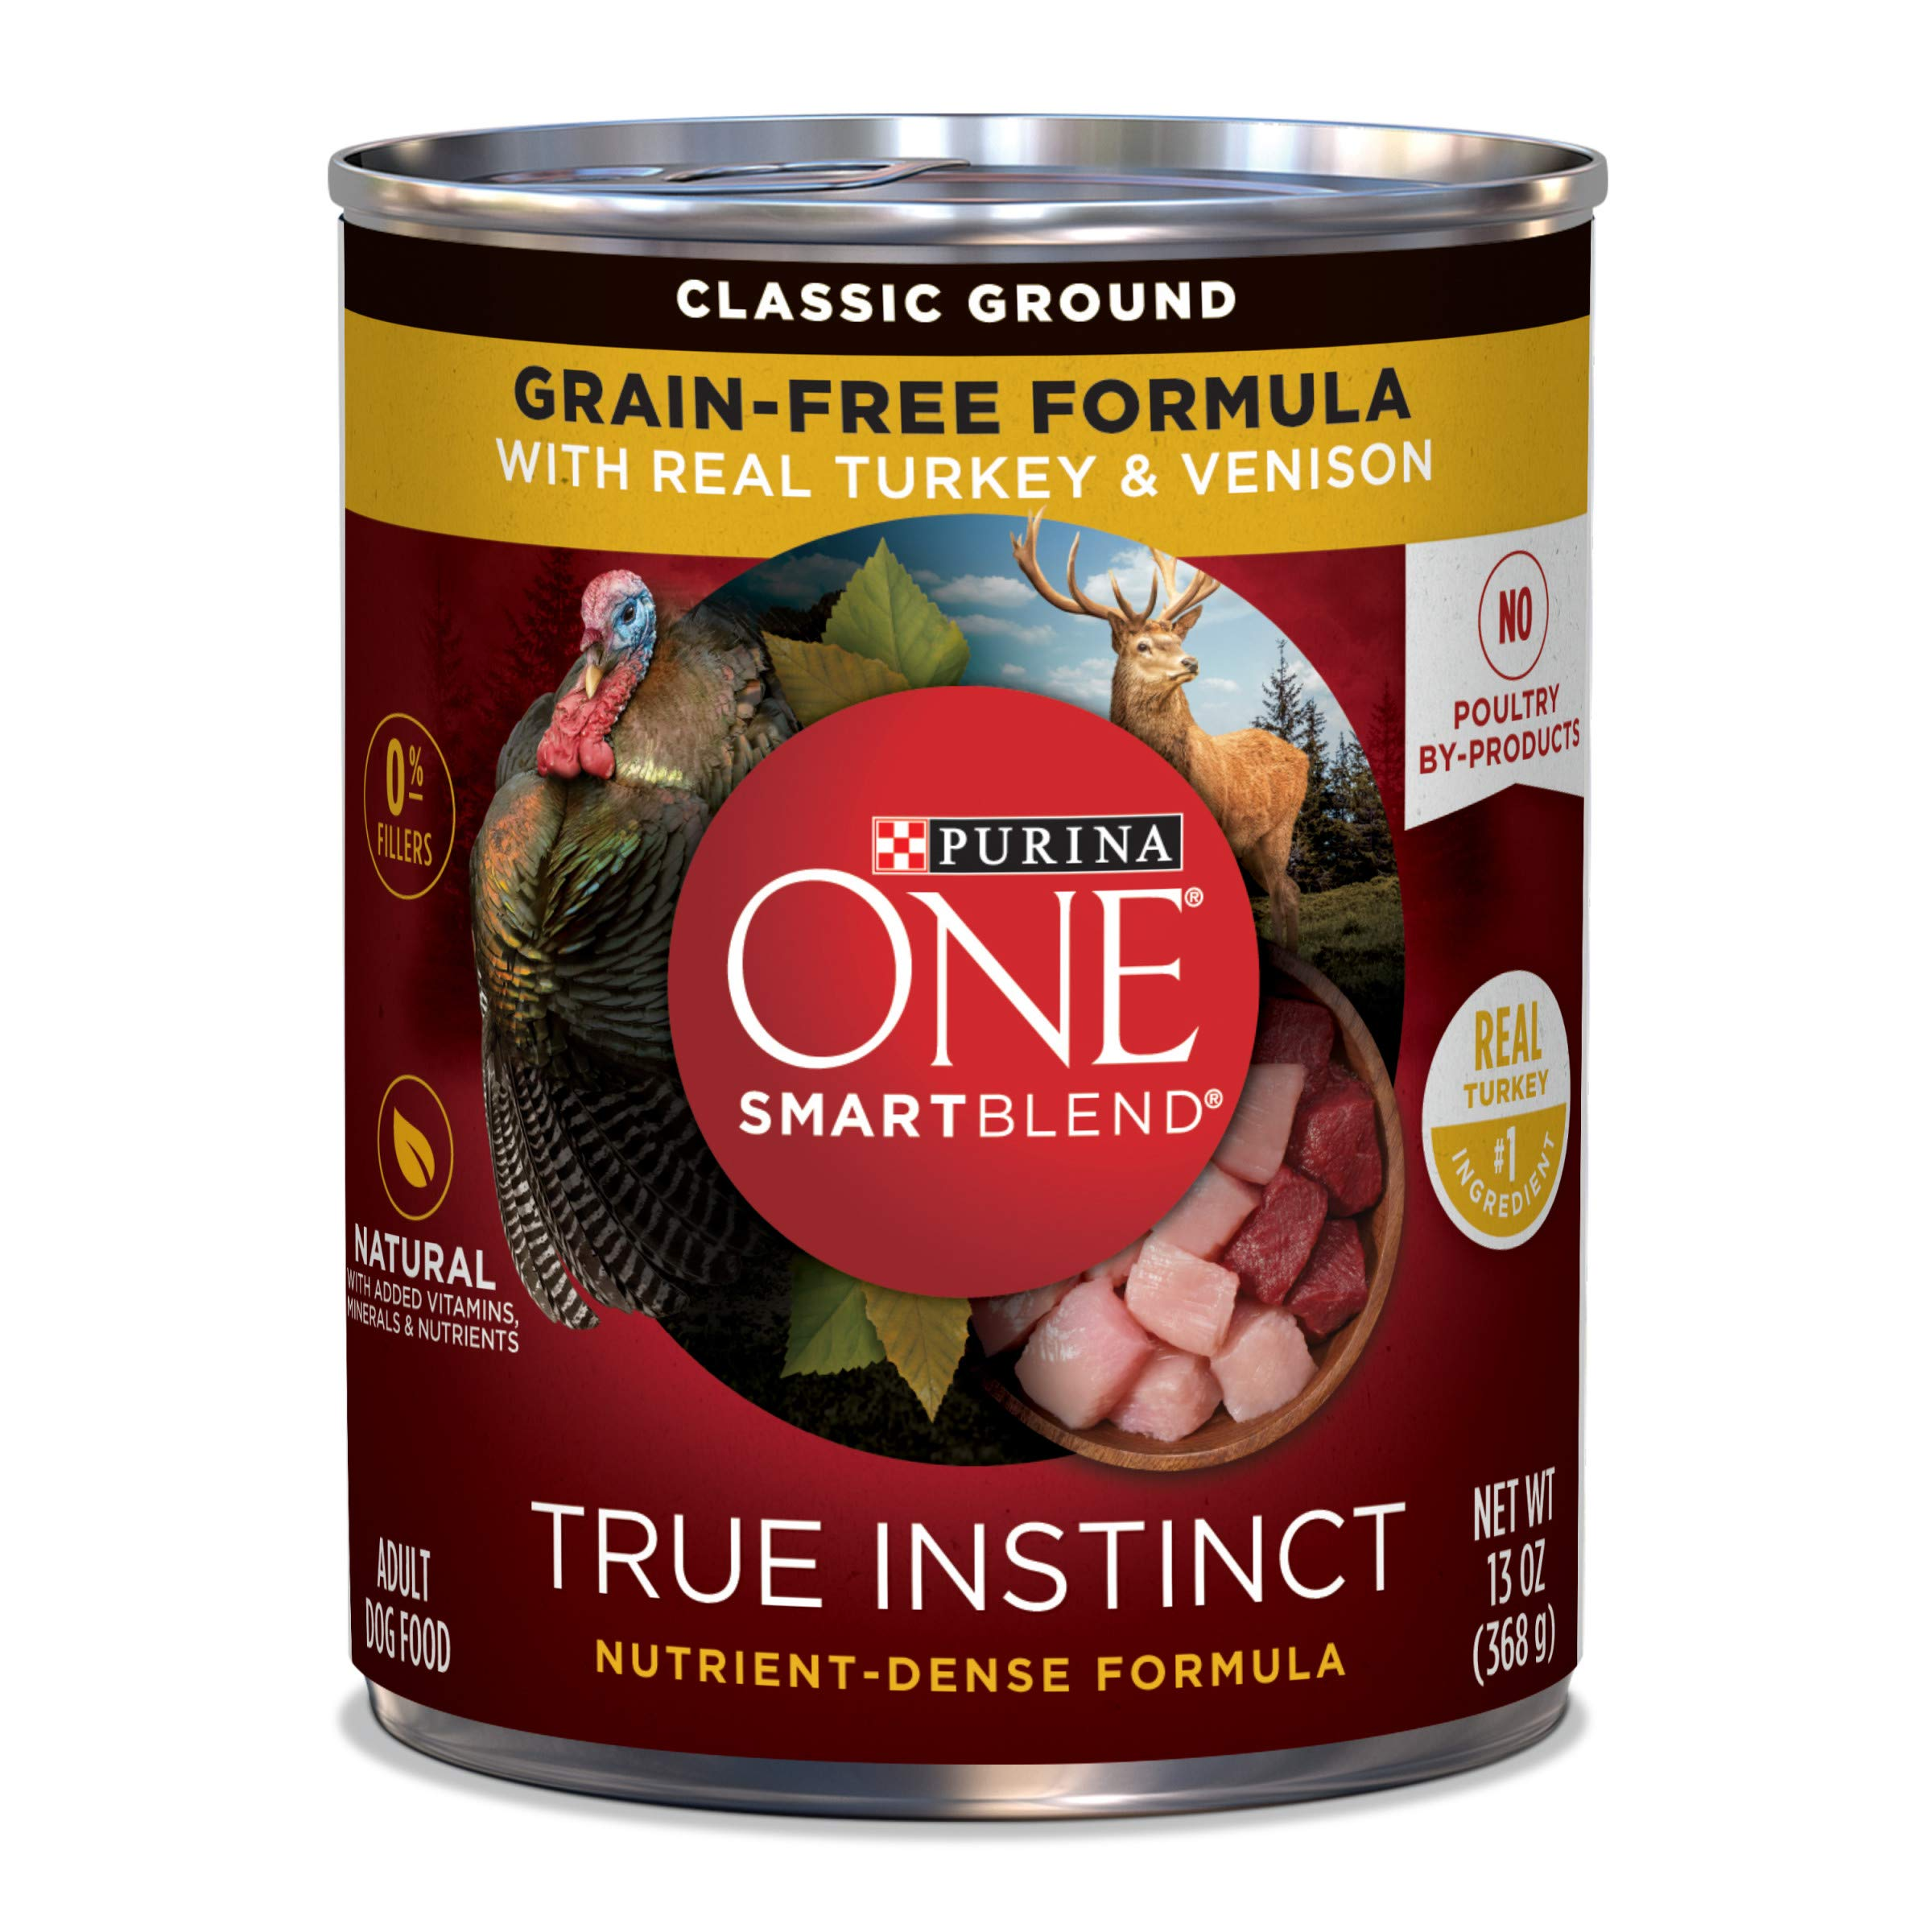 Purina ONE Grain Free, Natural Pate Wet Dog Food, SmartBlend True Instinct With Real Turkey & Venison - (12) 13 oz. Cans by Purina ONE